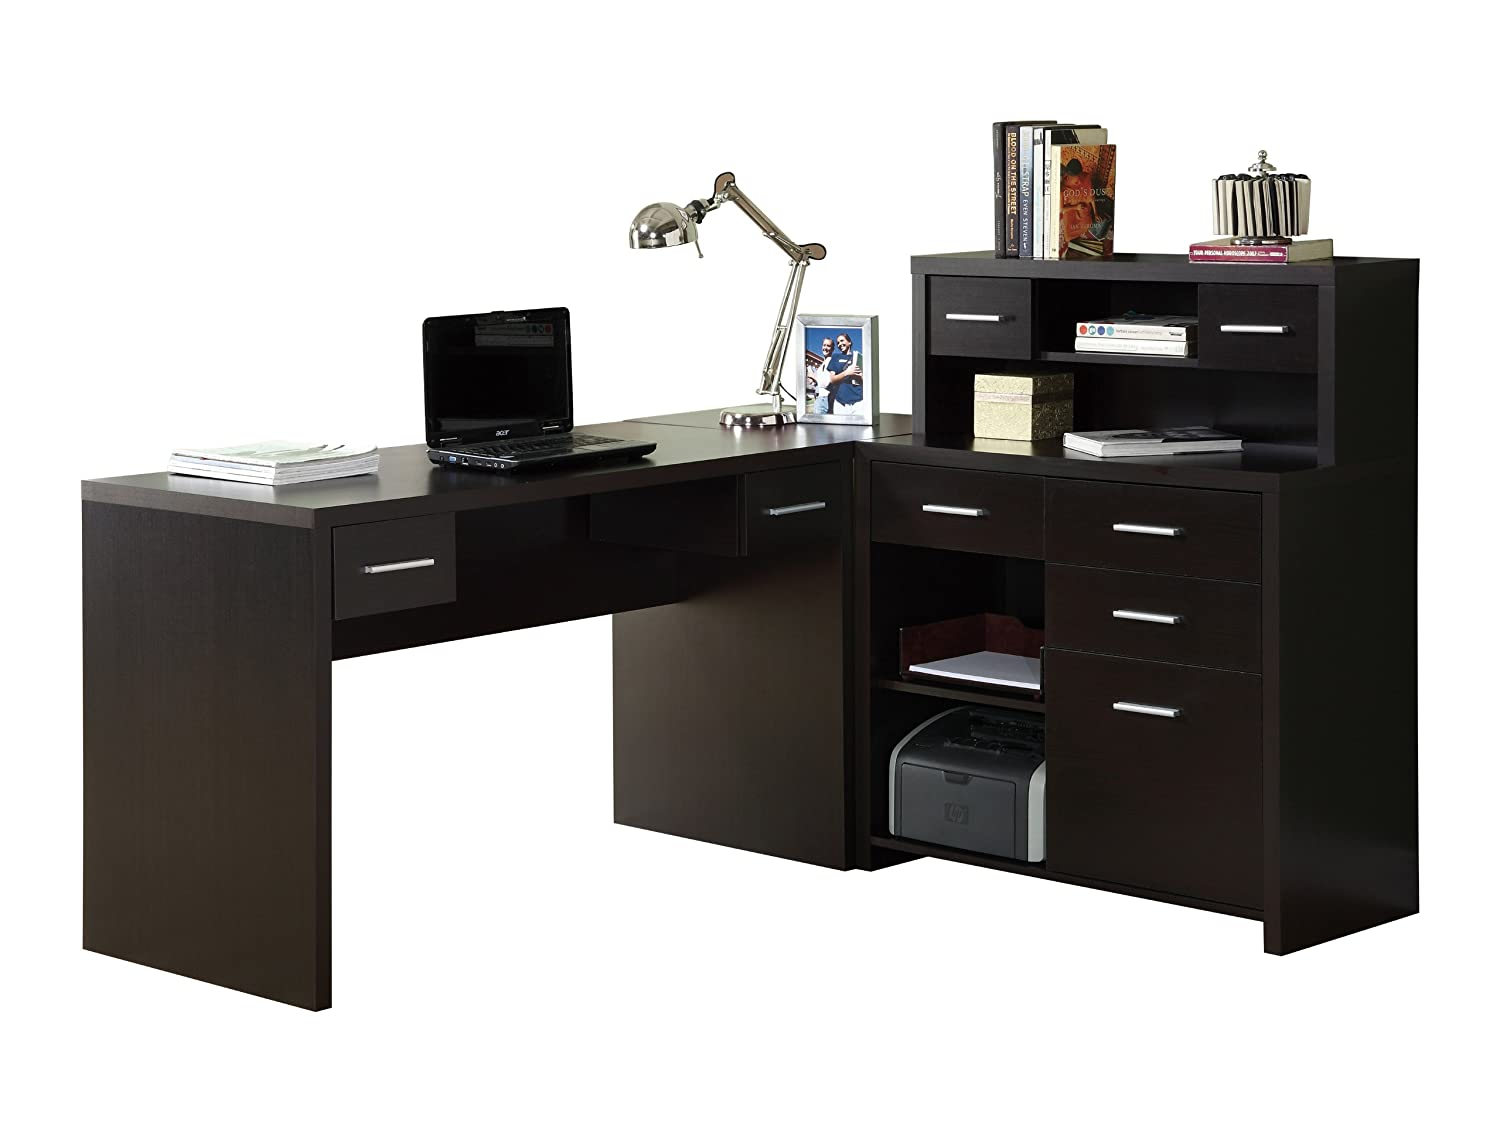 desk hack for ikea hackers complete home office study workstation